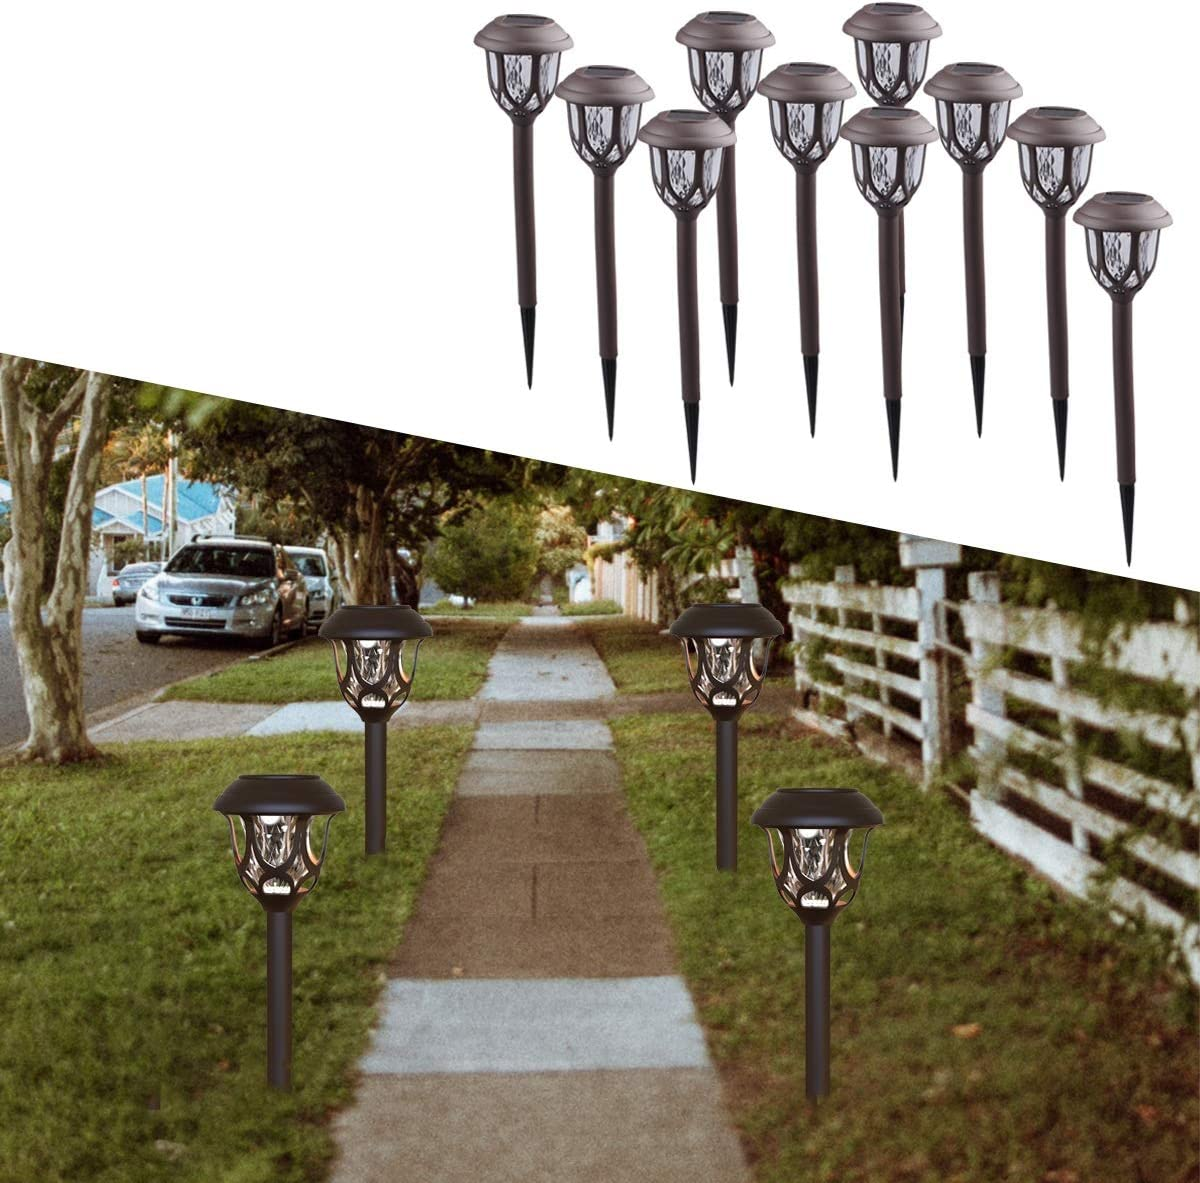 DUUDO Solar Lights Outdoor Decorative, Solar Pathway Lights Outdoor, Waterproof for Garden Patio Yard Landscape Driveway White 10Pack